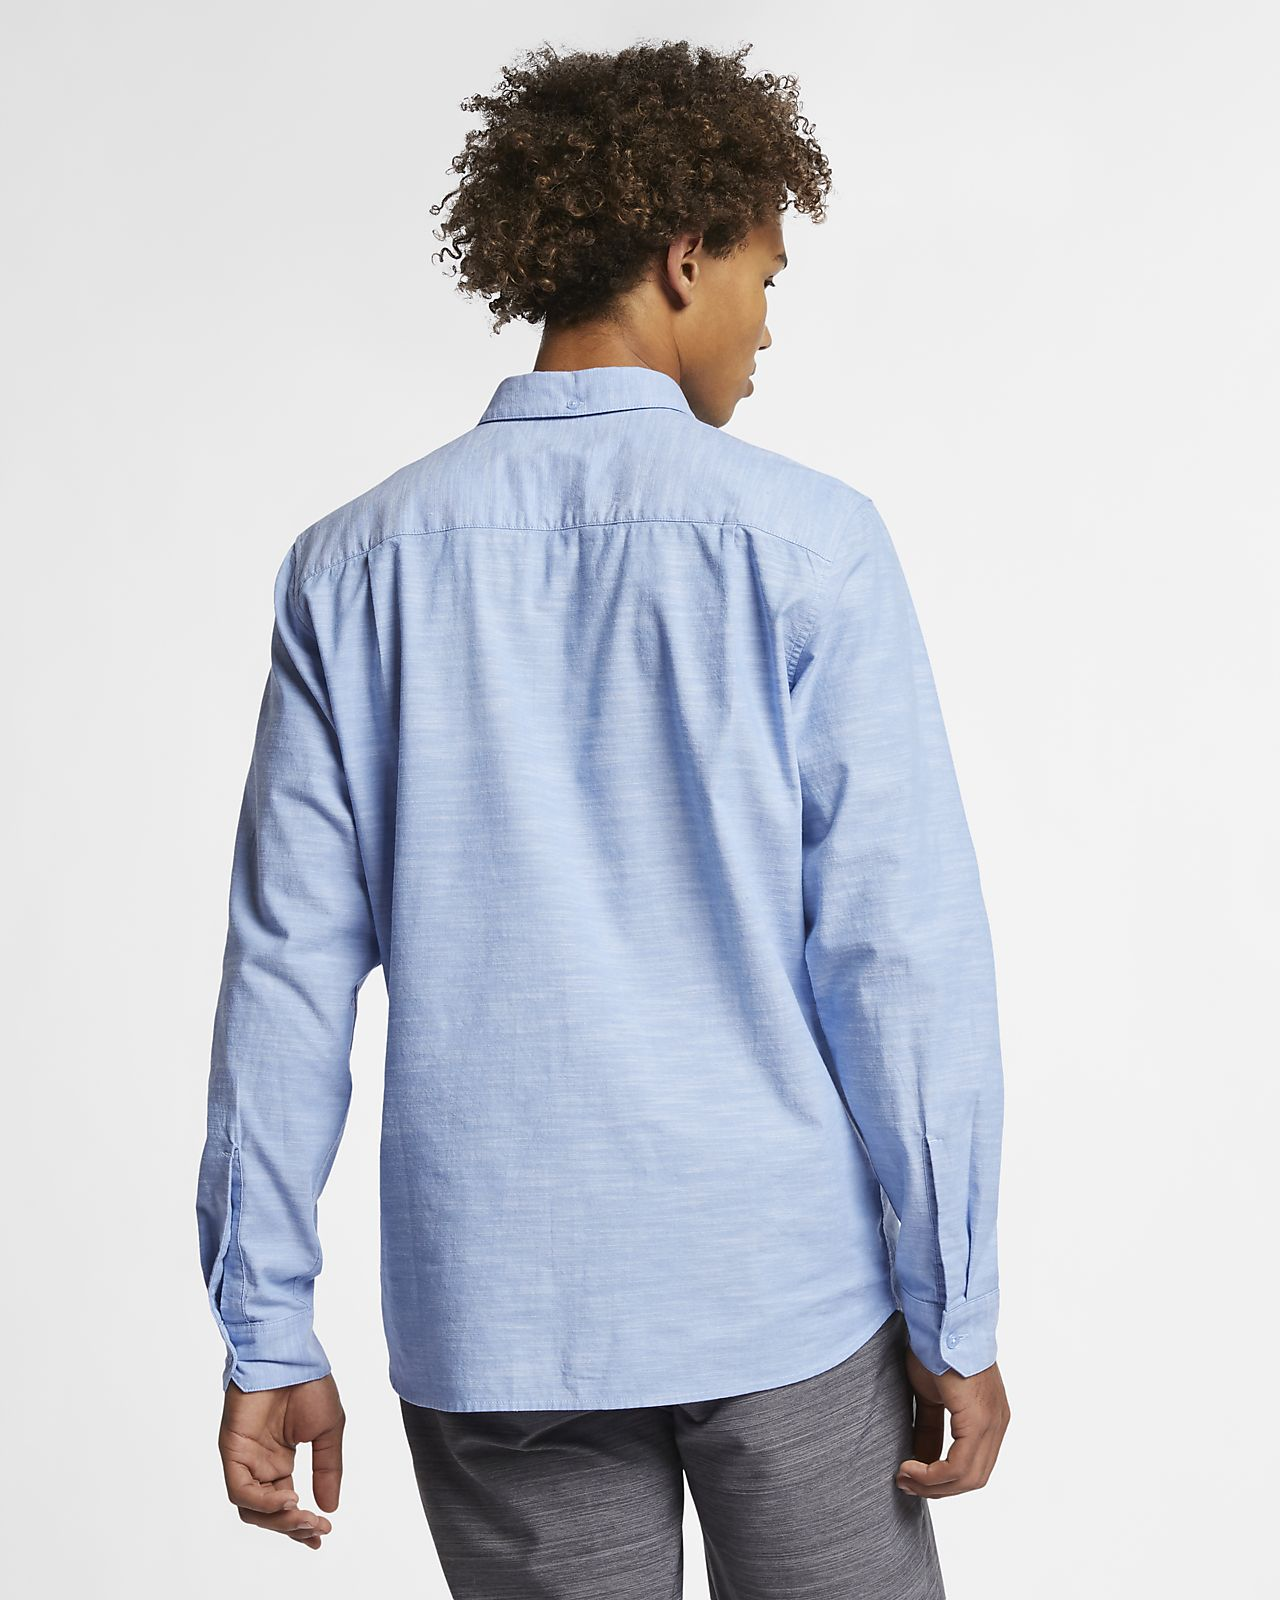 5fb566f010 Hurley One And Only Men's Long-Sleeve Shirt